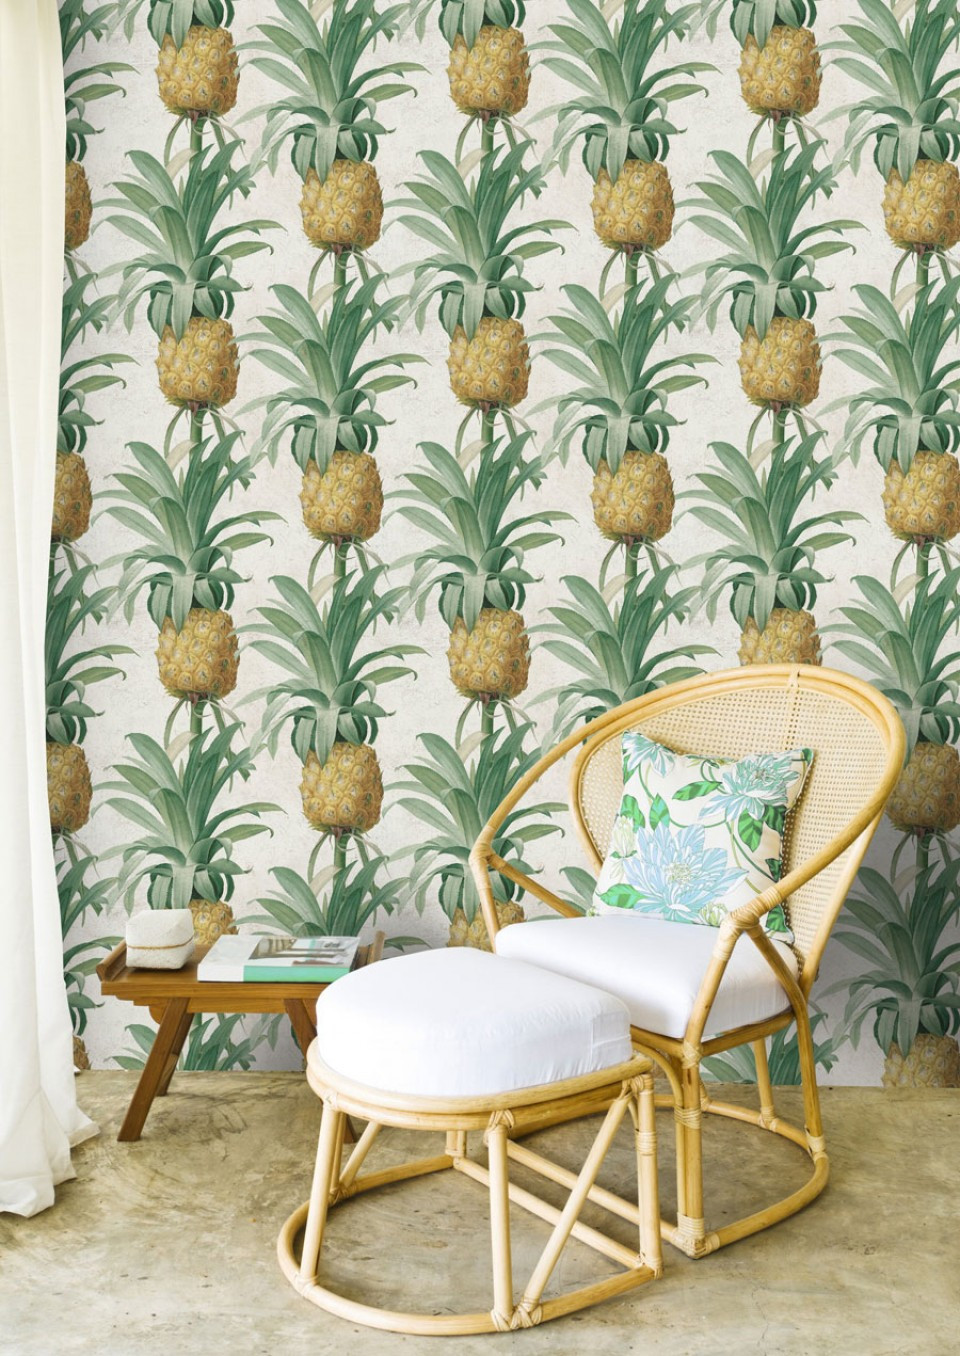 Botanical wallpaper pineapples